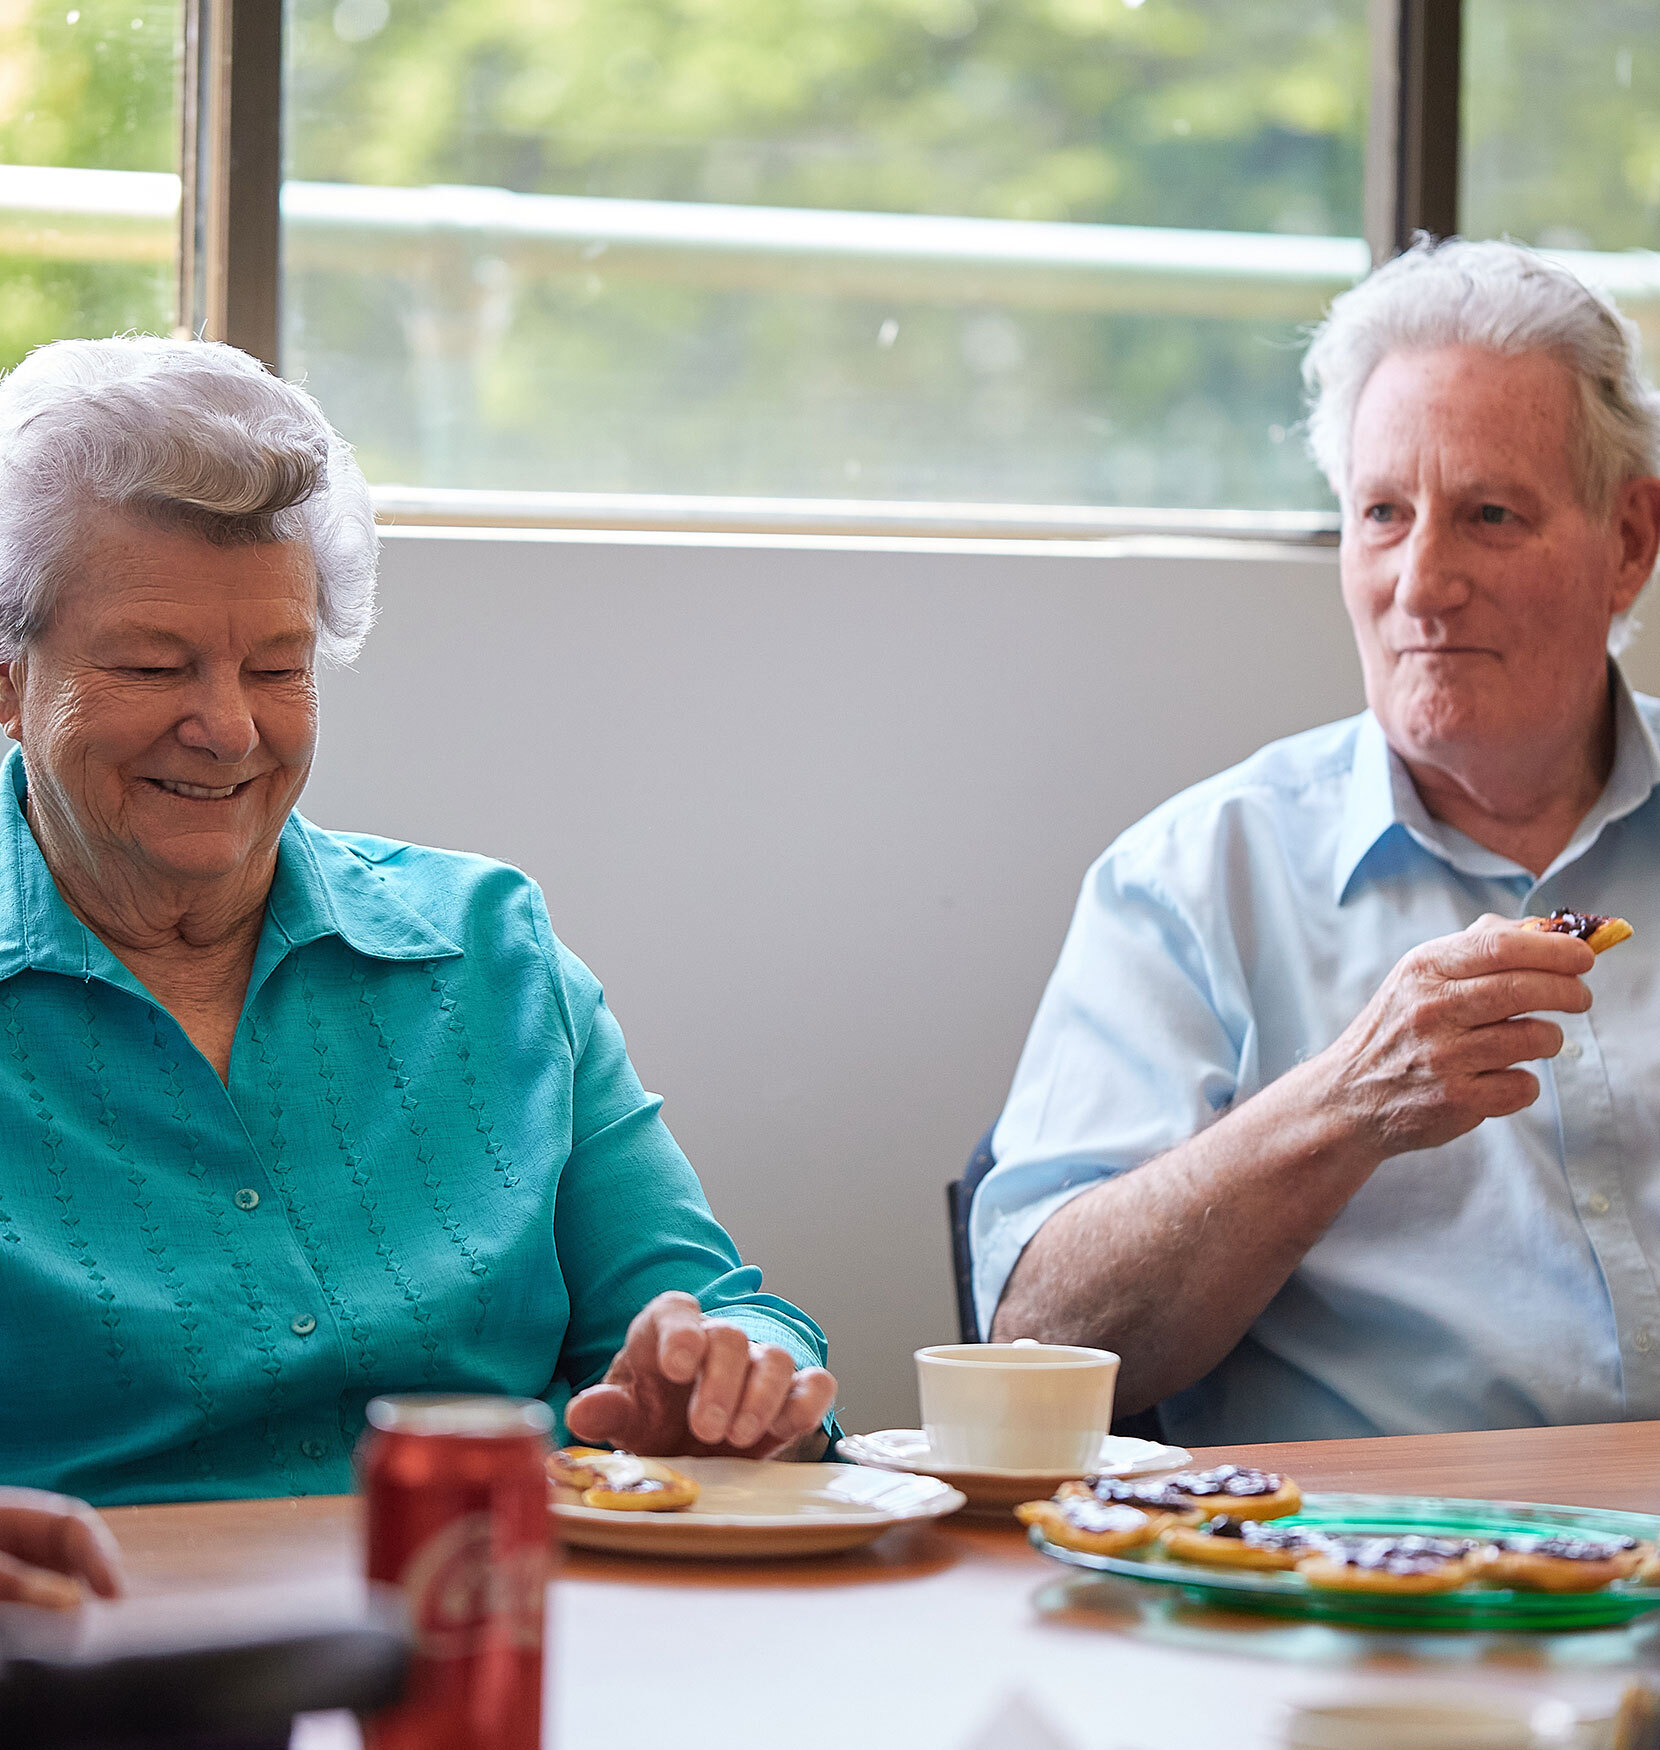 An elderly man and woman sitting at a dining table. They have a plate of biscuits in front of them and the man is holding one. They're both grinning.